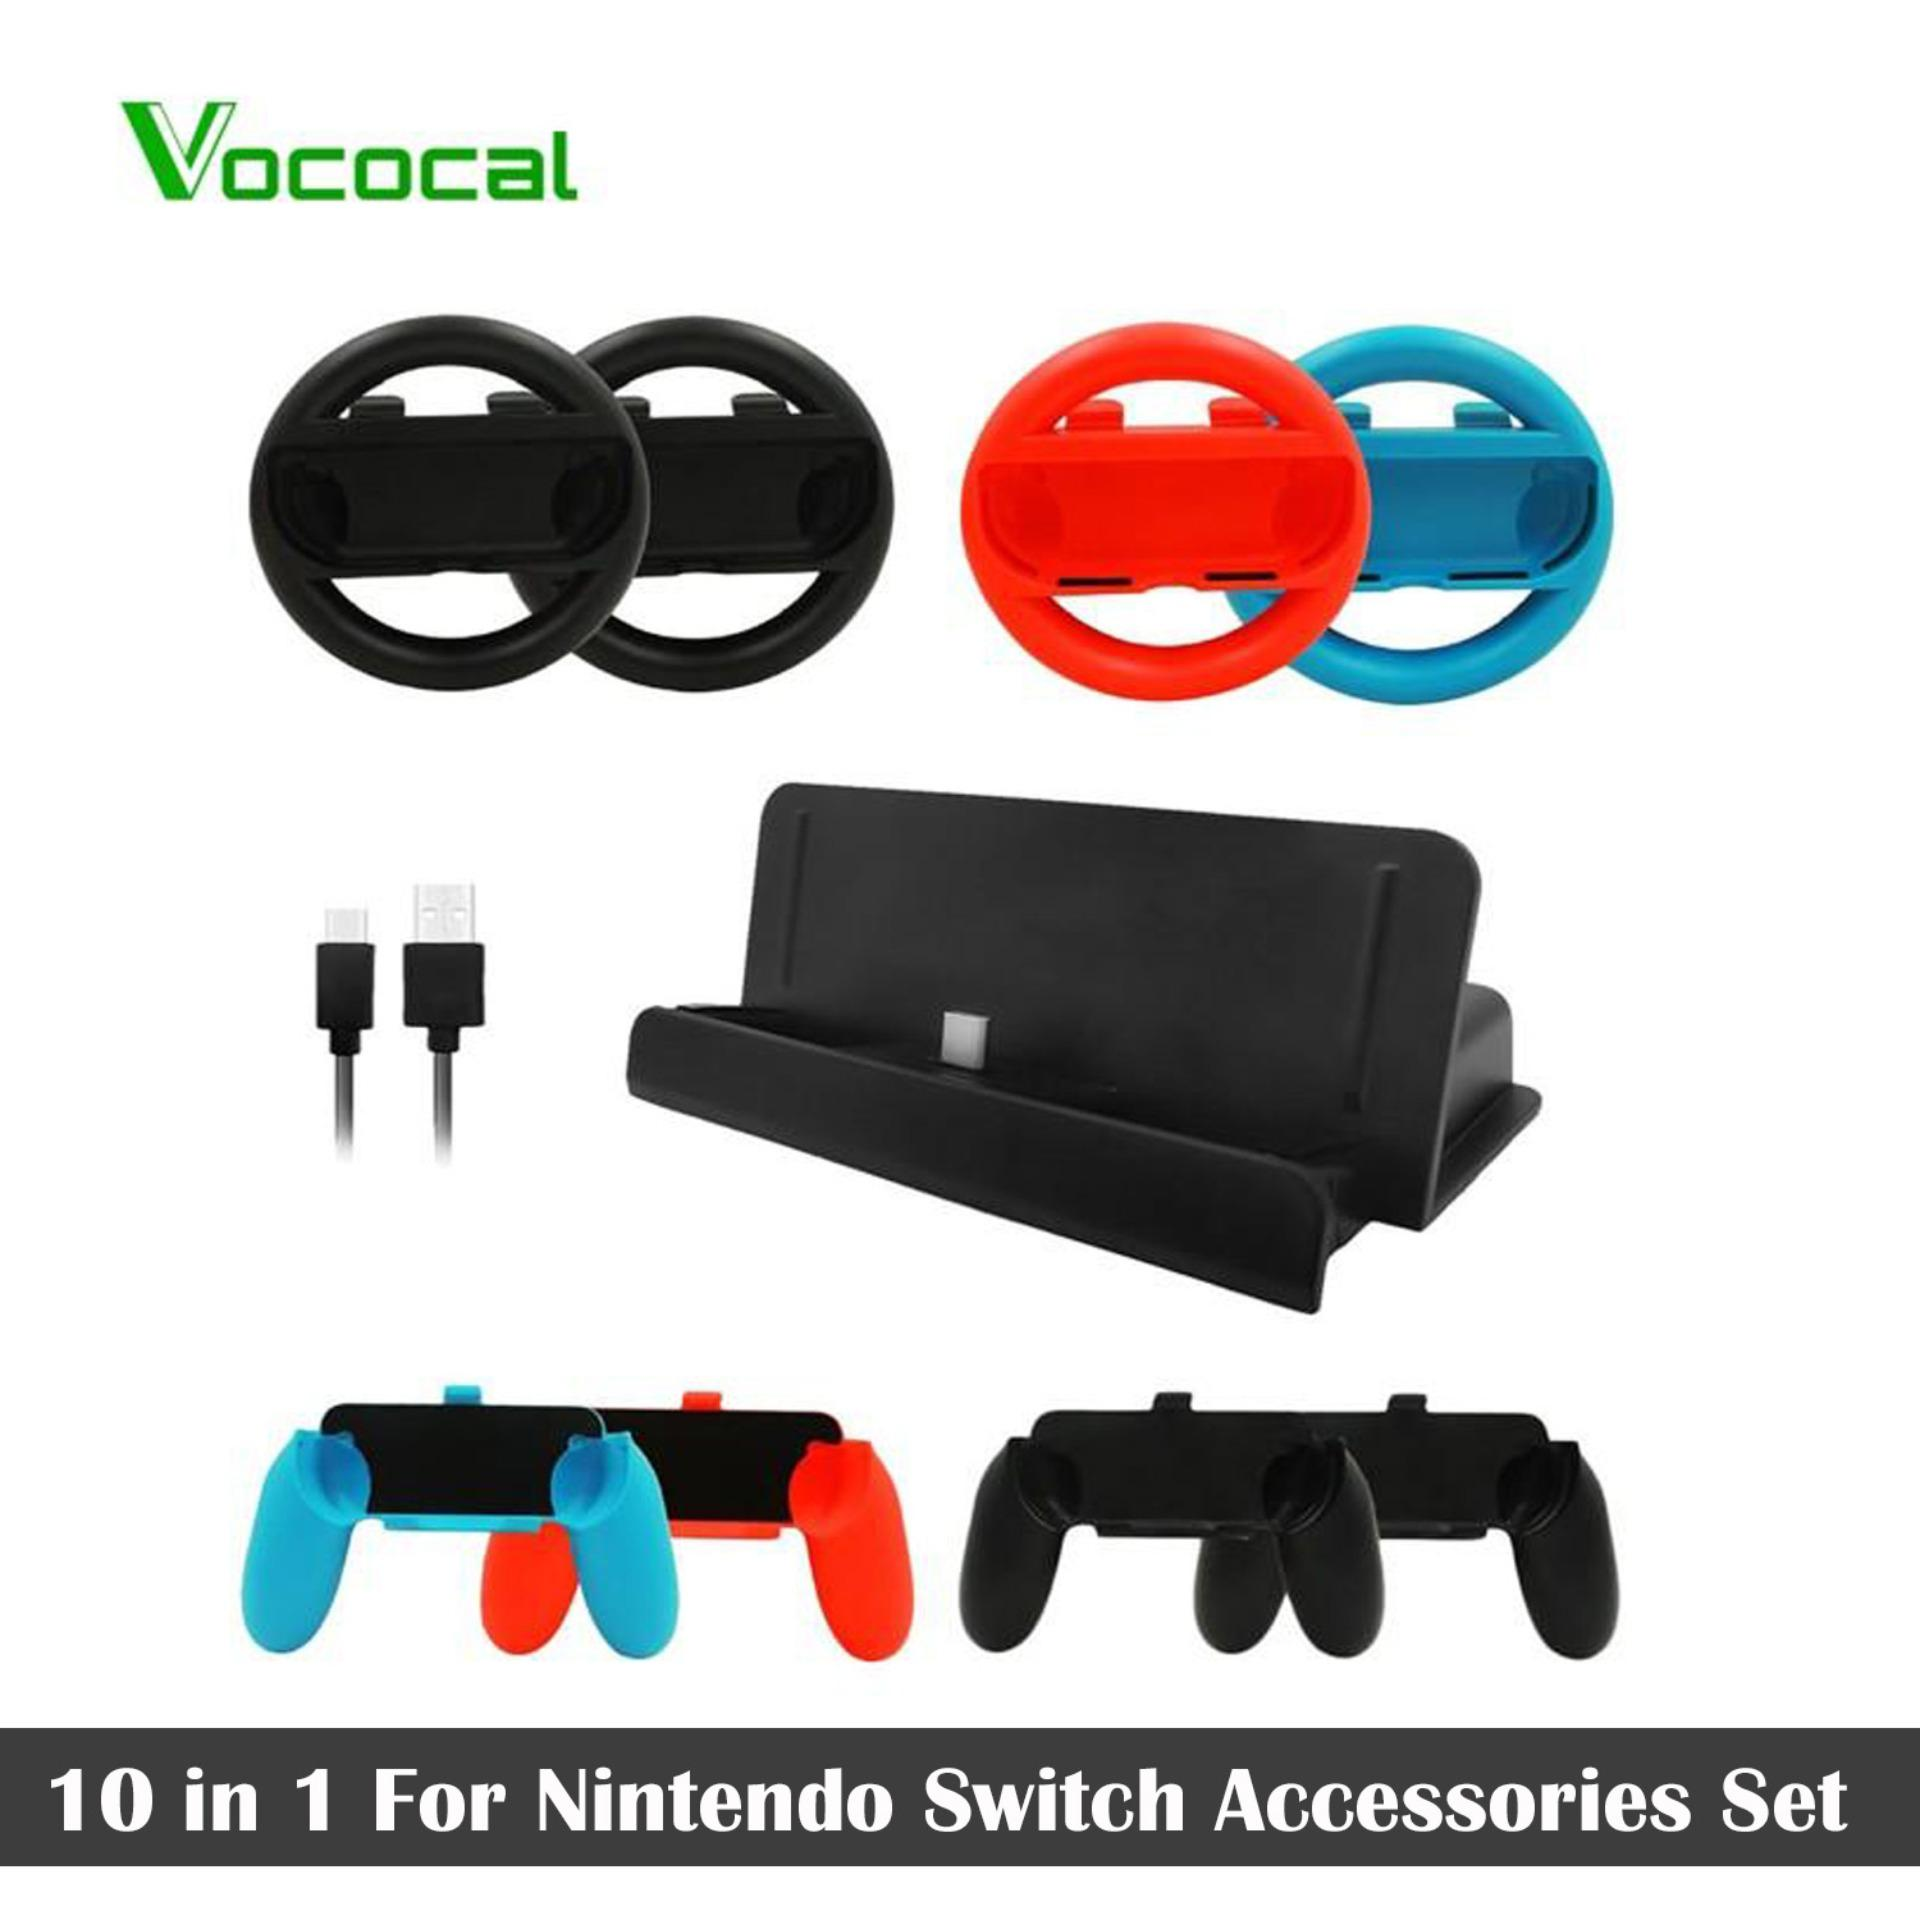 (in Stock)vococal 10 In 1 For Nintendo Switch Accessories Set 4 Pcs Joy Con Controller Wheel + 4 Pcs Grip Handle + 1 Pcs Console Charge Stand + 1 Pcs Usb Cable - Intl By Vococal Shop.